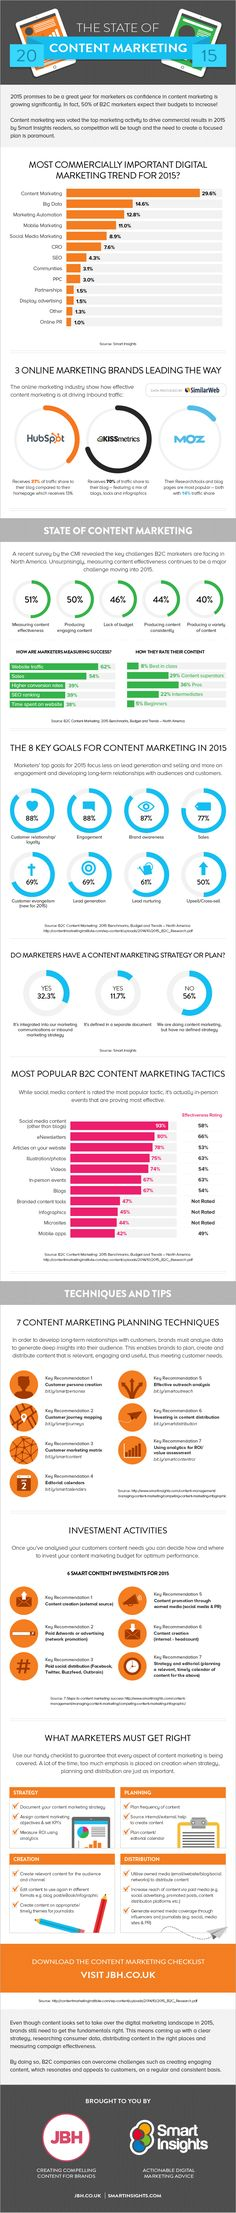 The State of Content Marketing 2015 via @angela4design  #infographic #ContentMarketing #Marketing